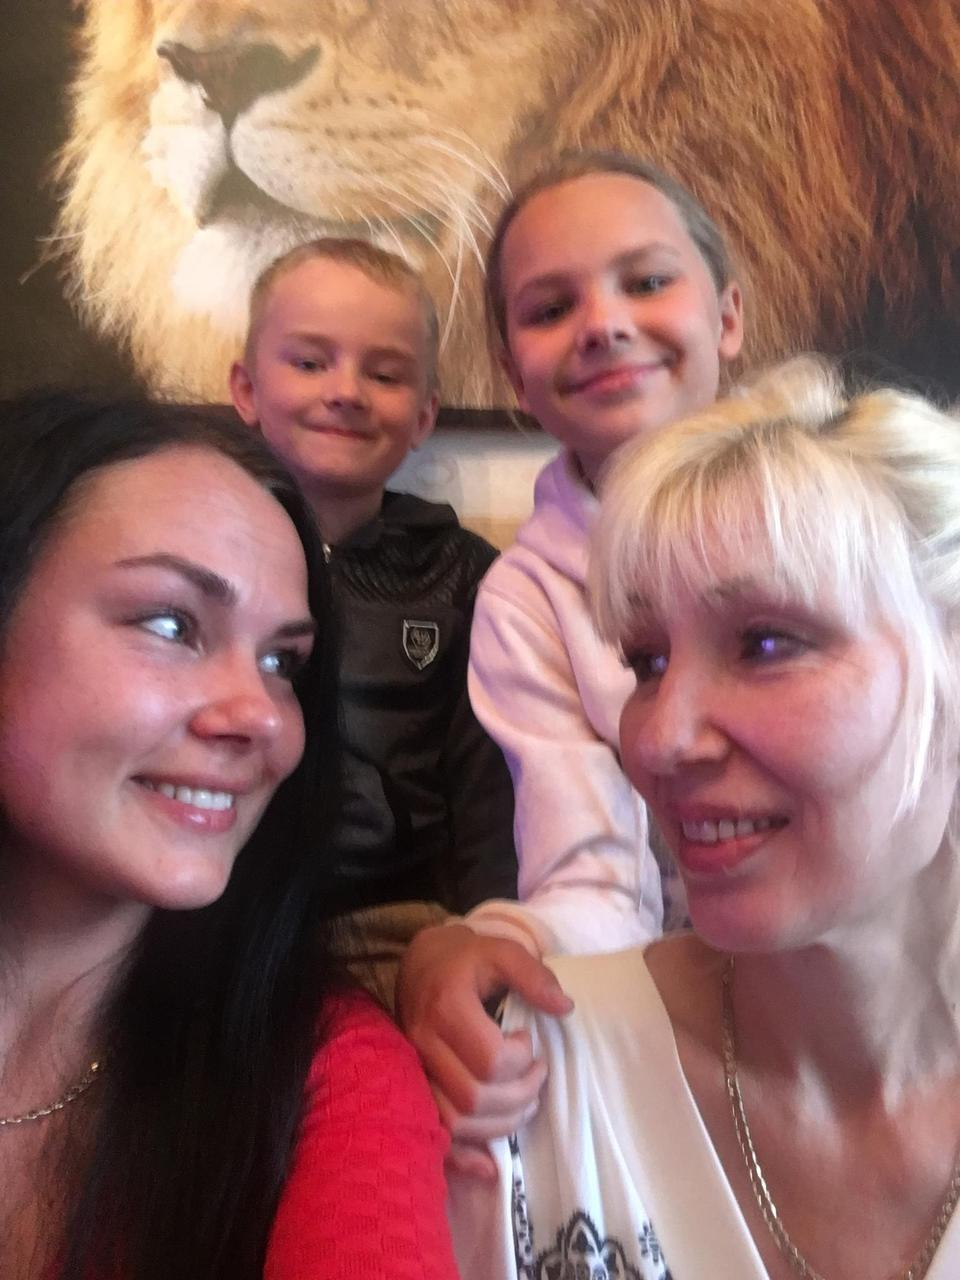 Irene Amur with her daughter Helina and her grandchildren Andri and Janelle